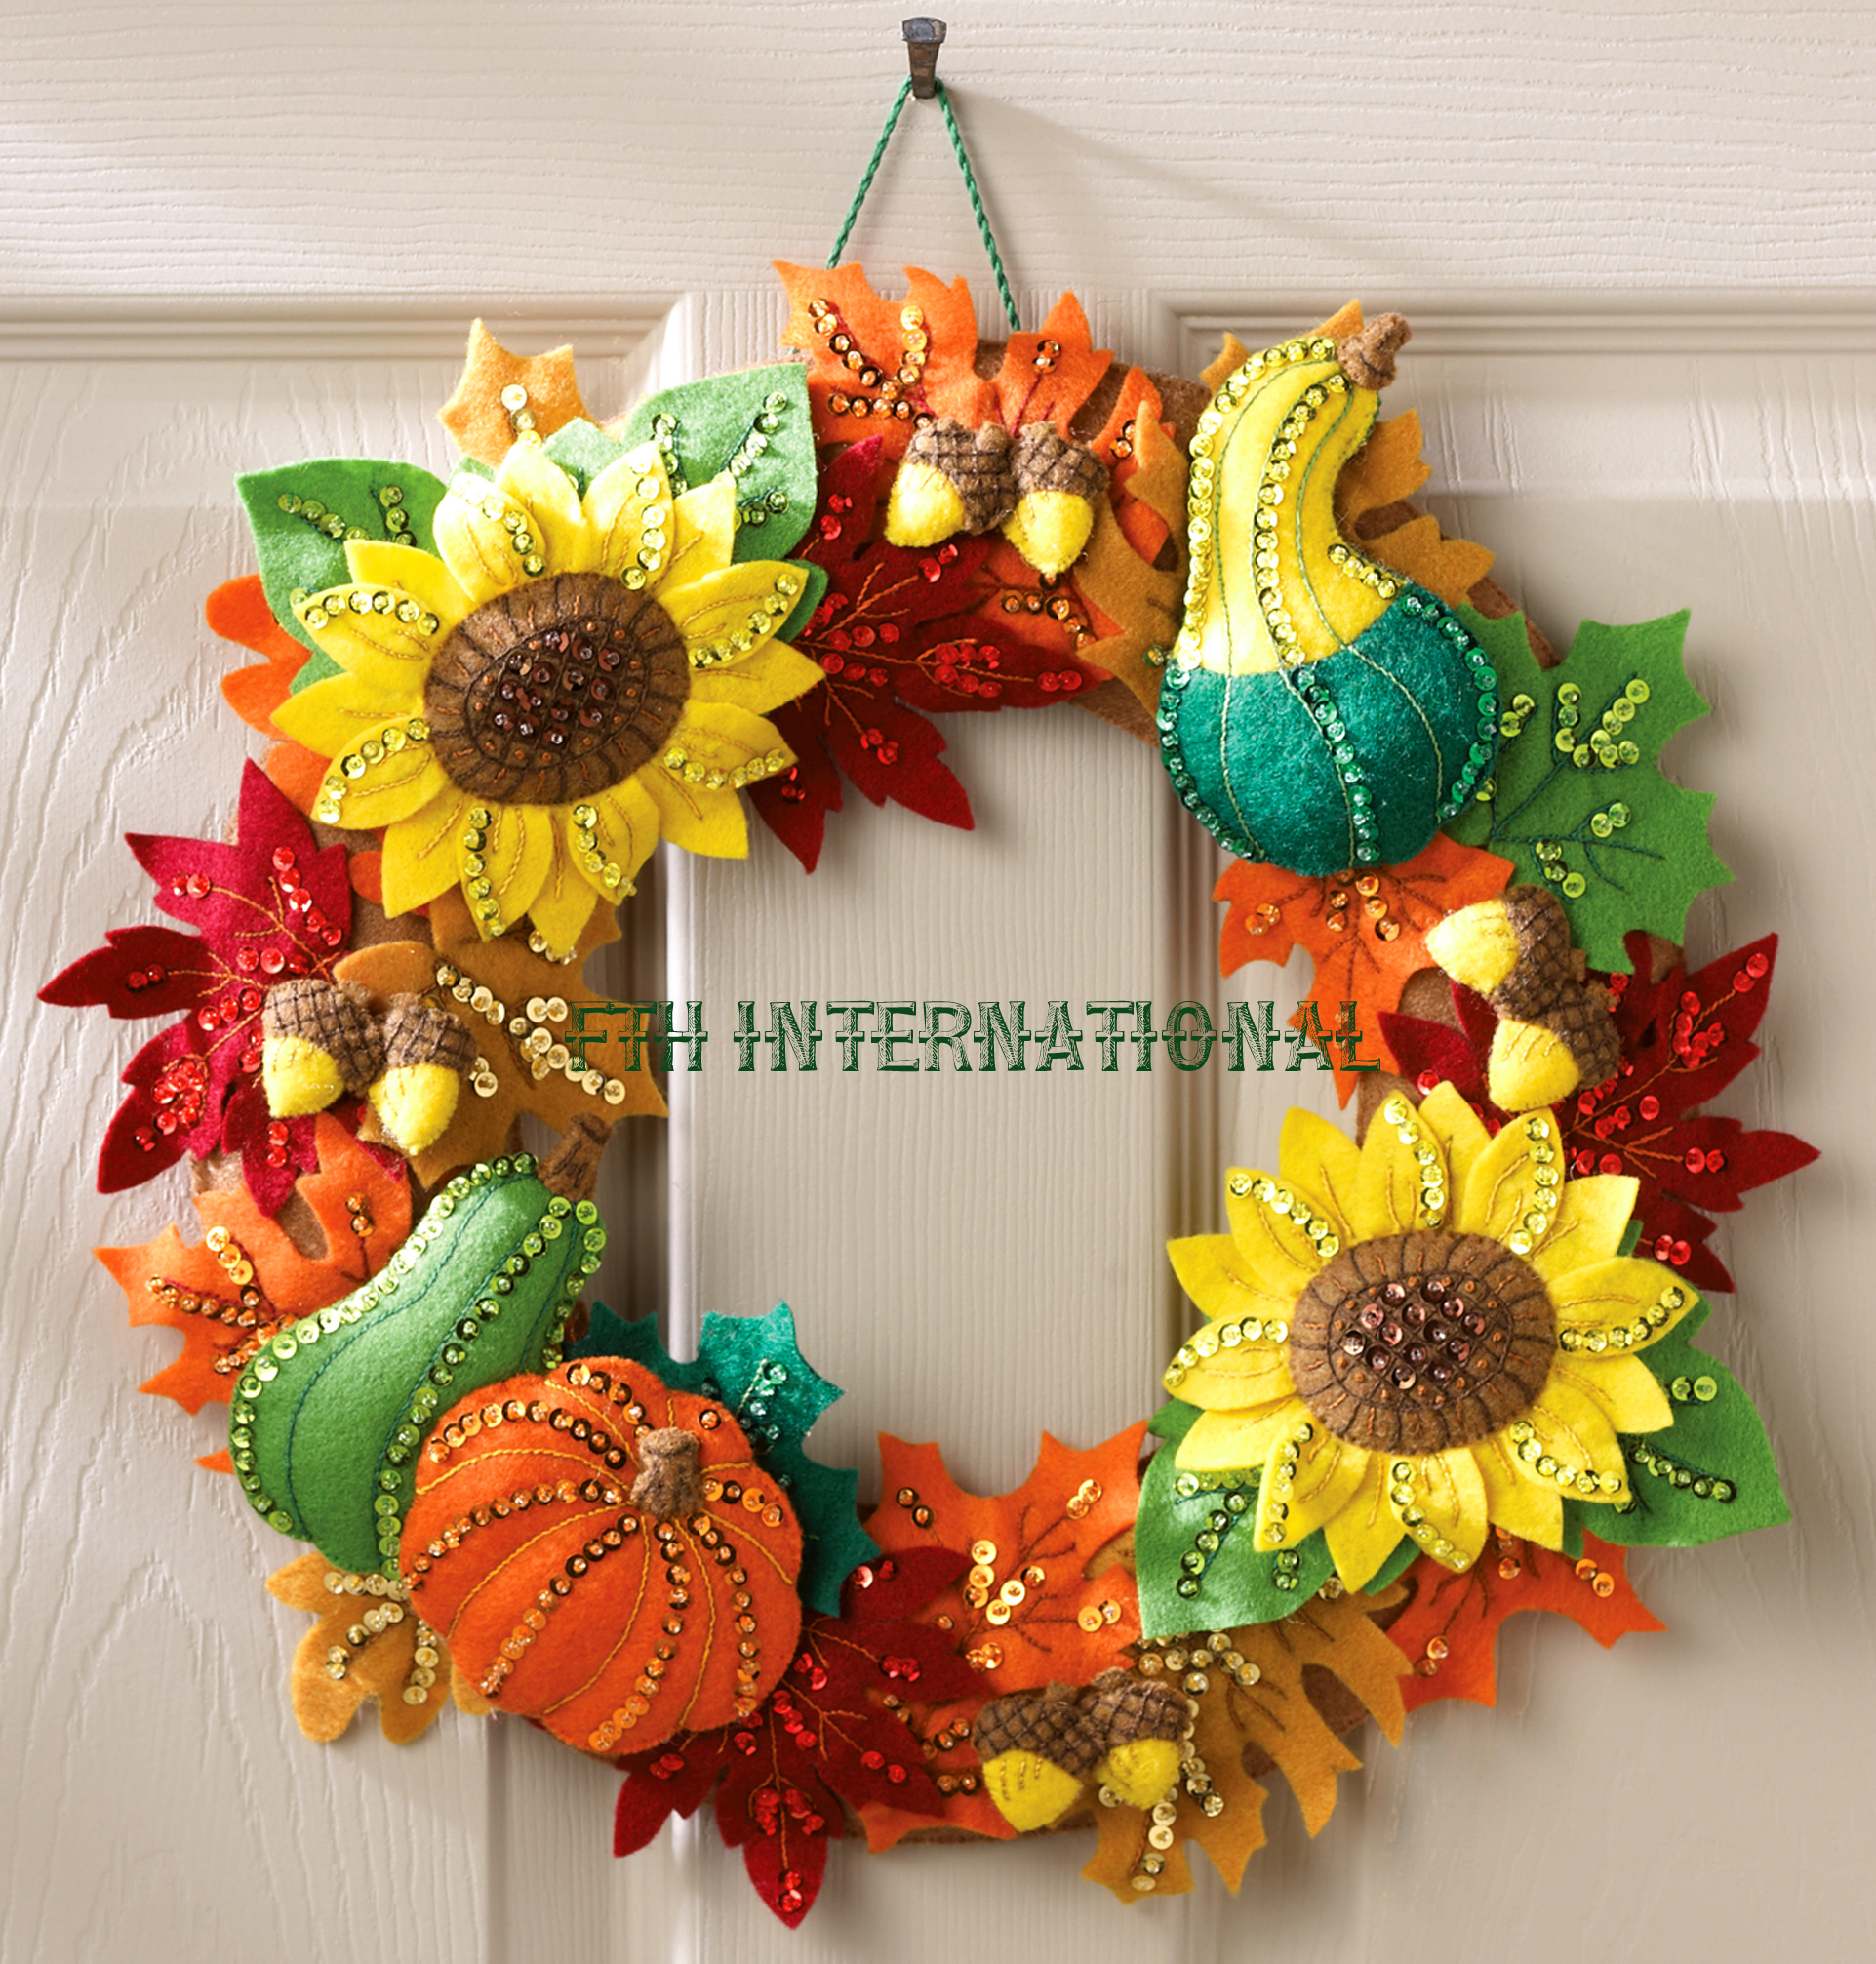 harvest time wreath bucilla felt christmas home decor kit 86428